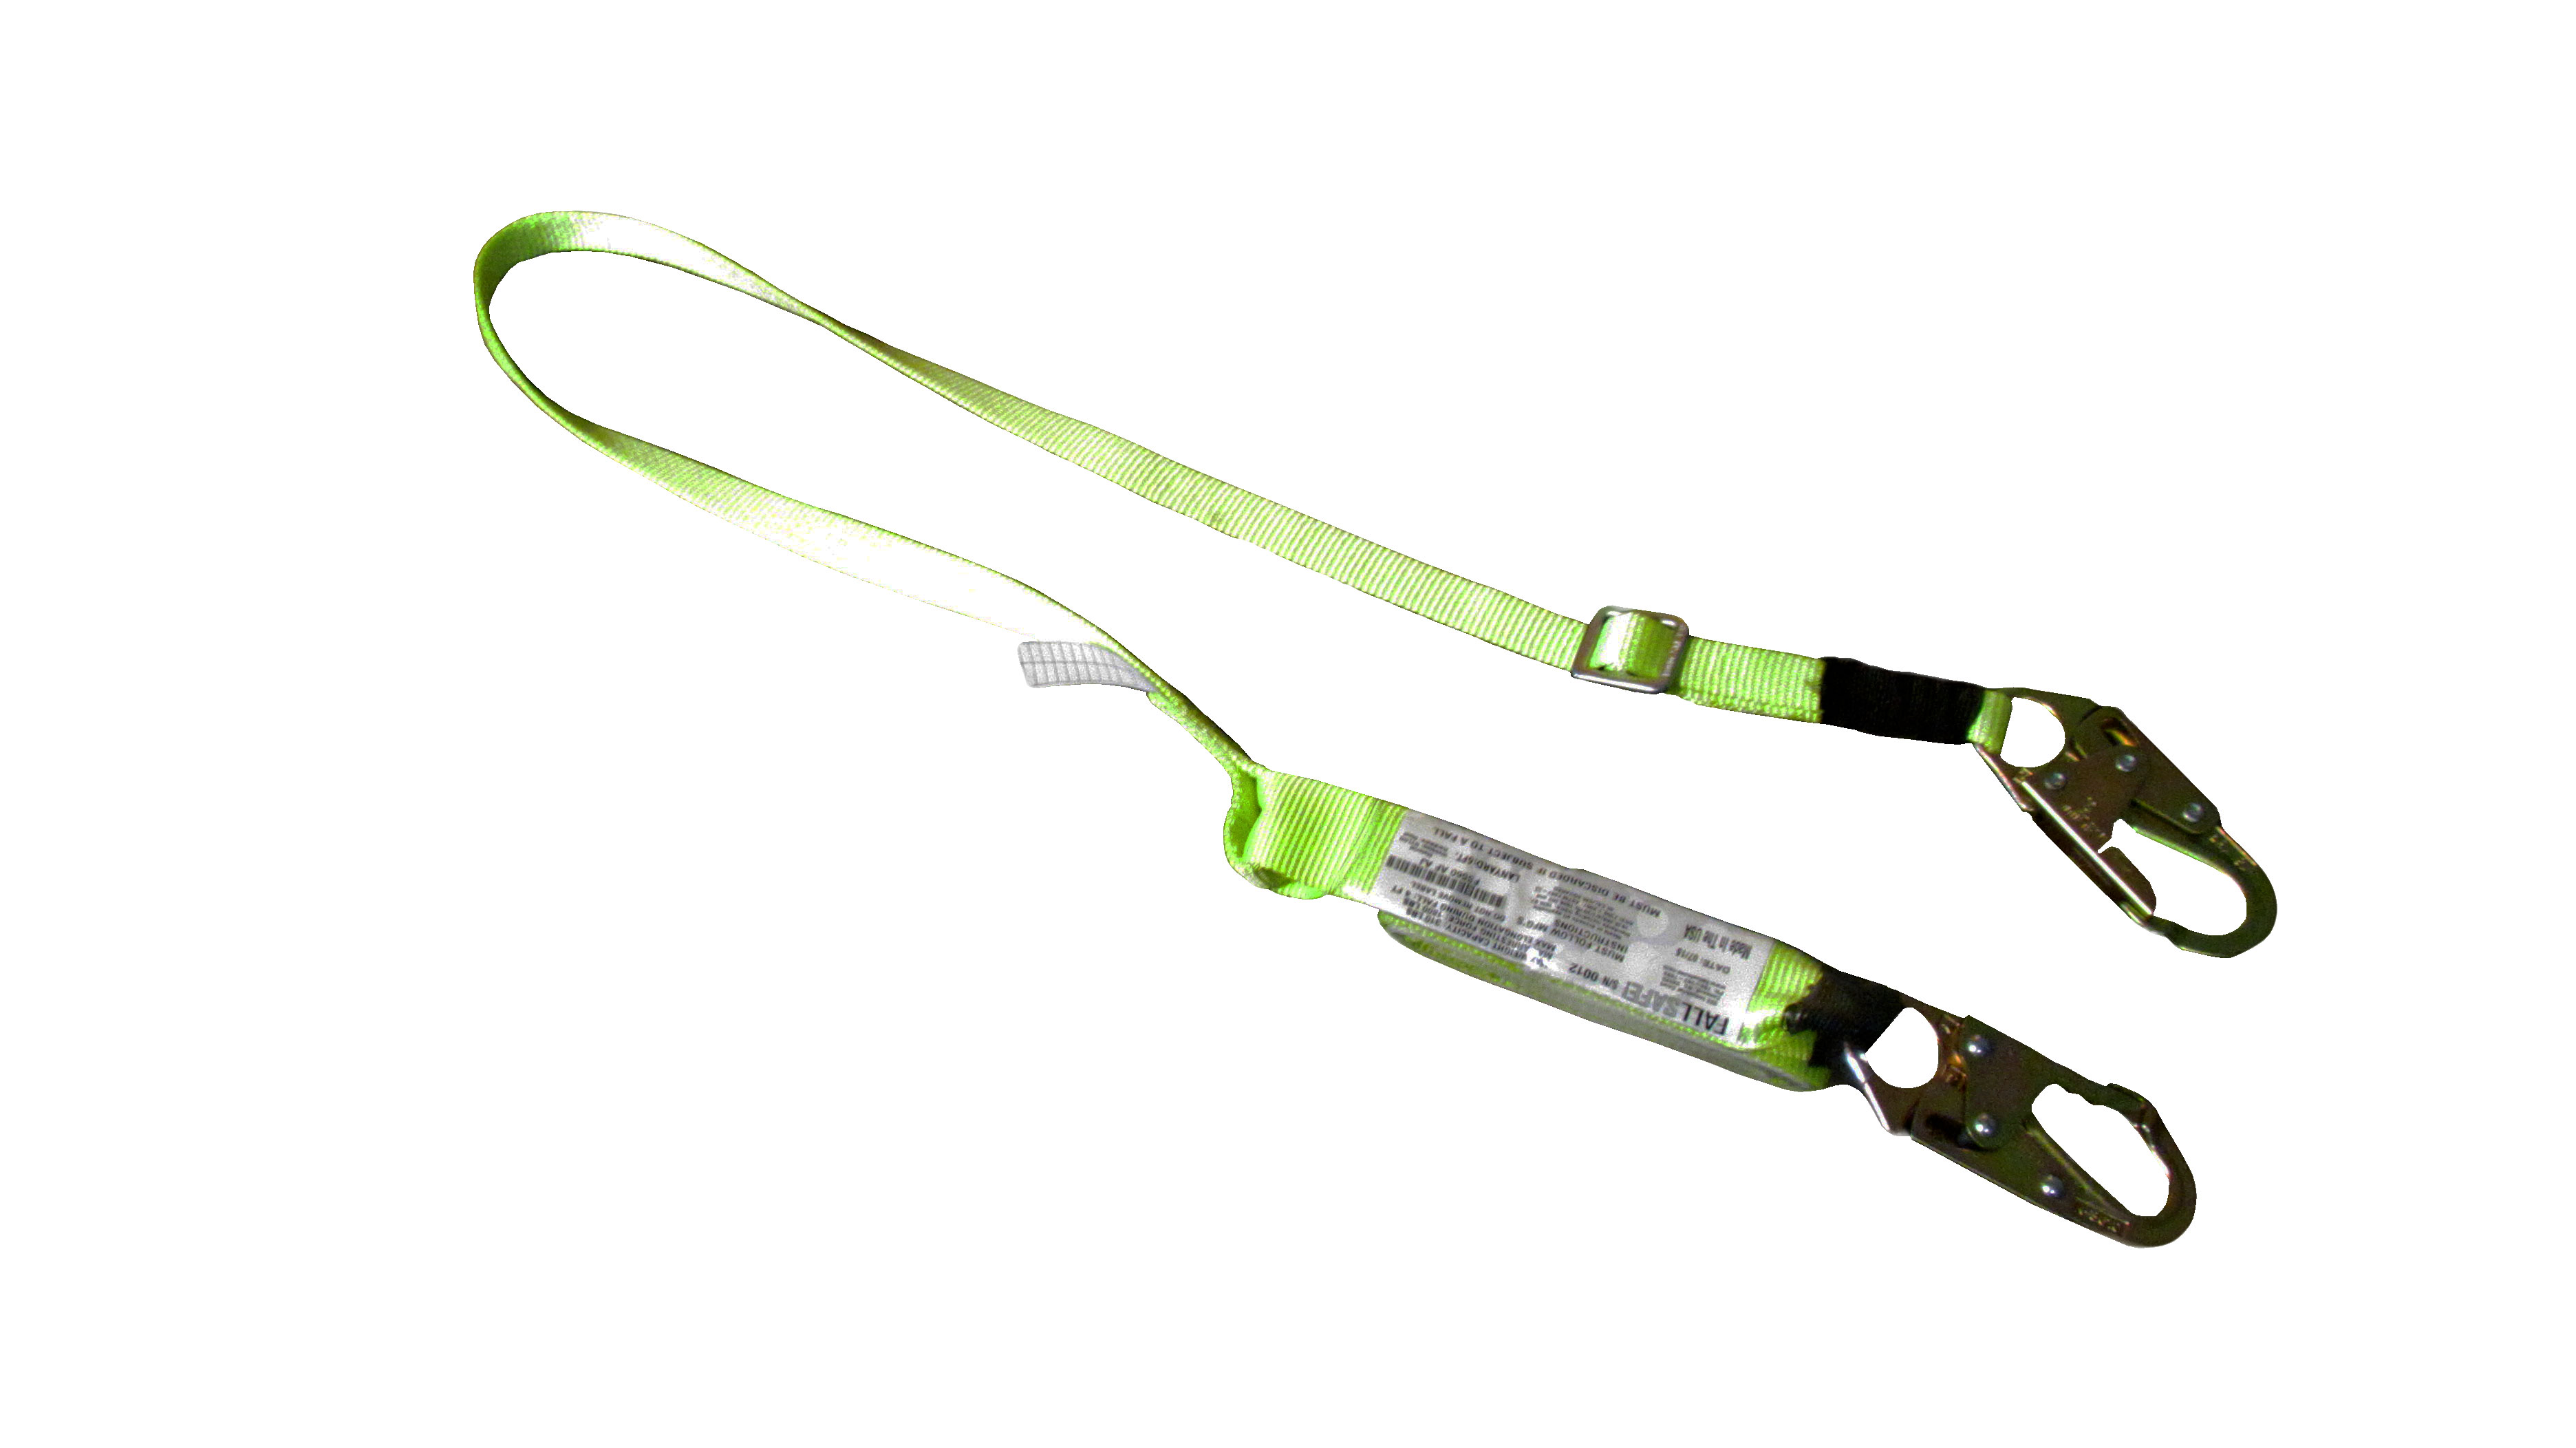 SafeWaze Lanyard. 6 FT Adjustable to 4 FT, Arc Flash Rated, 40 CAL.  Meets ASTM F887